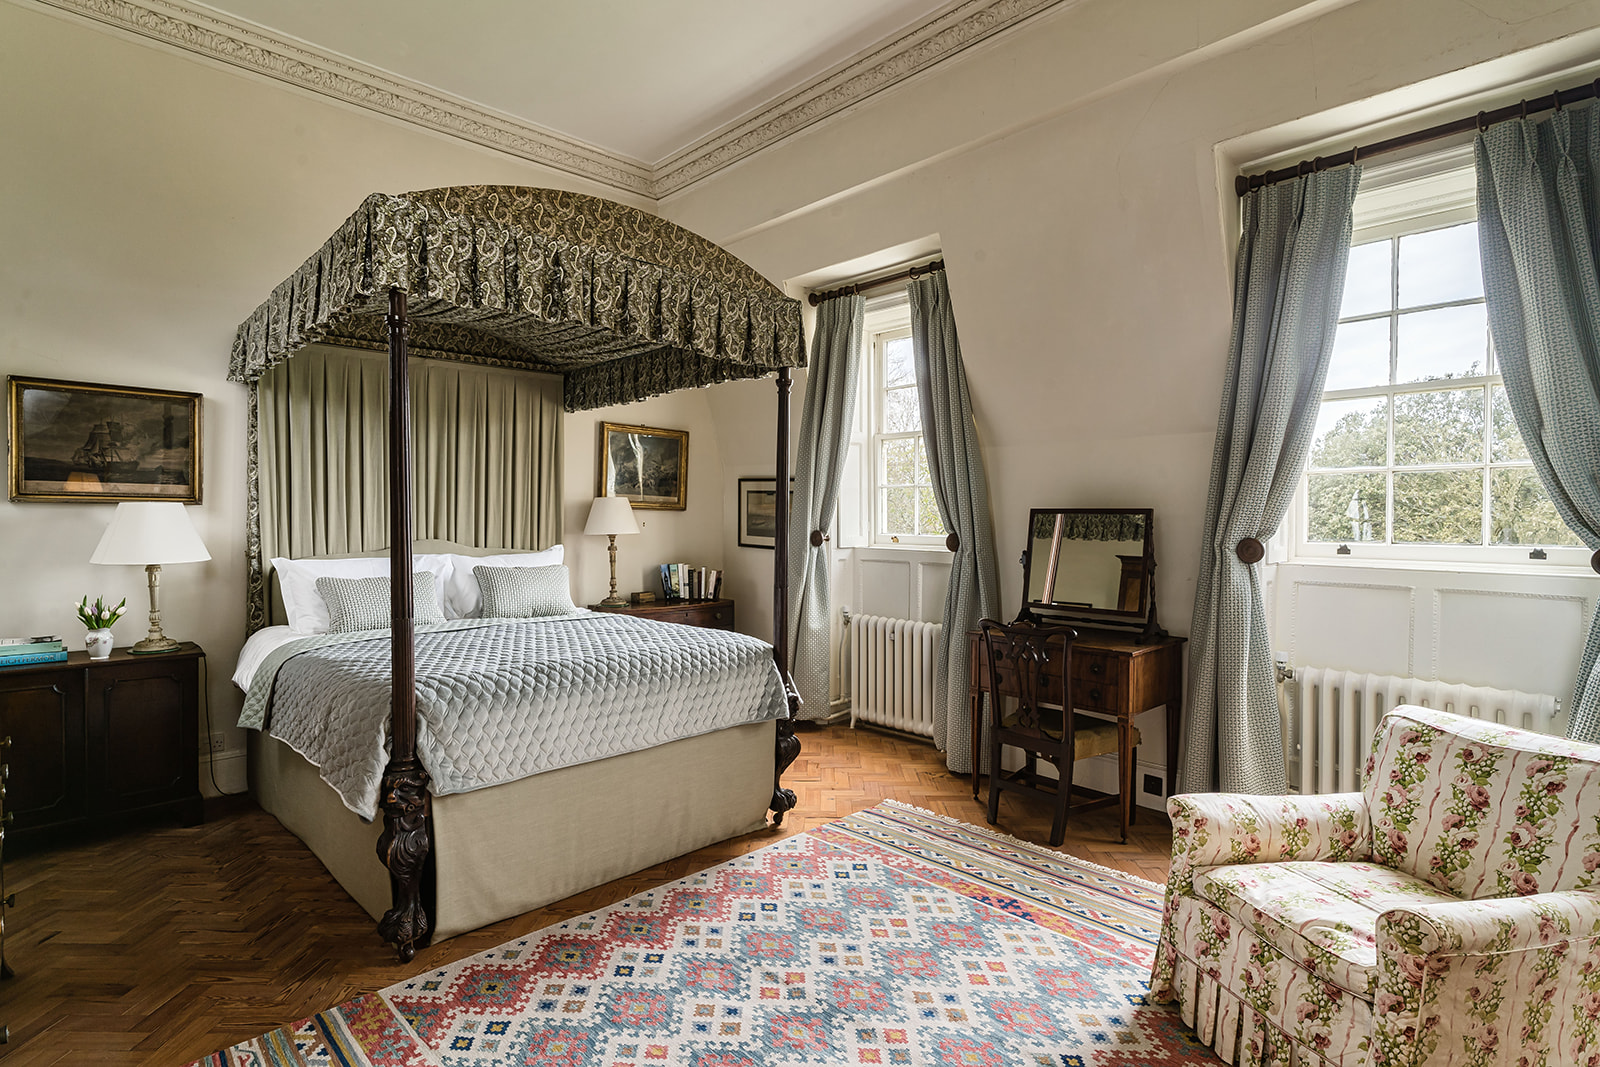 Sophie offers luxury accommodation in Southampton.